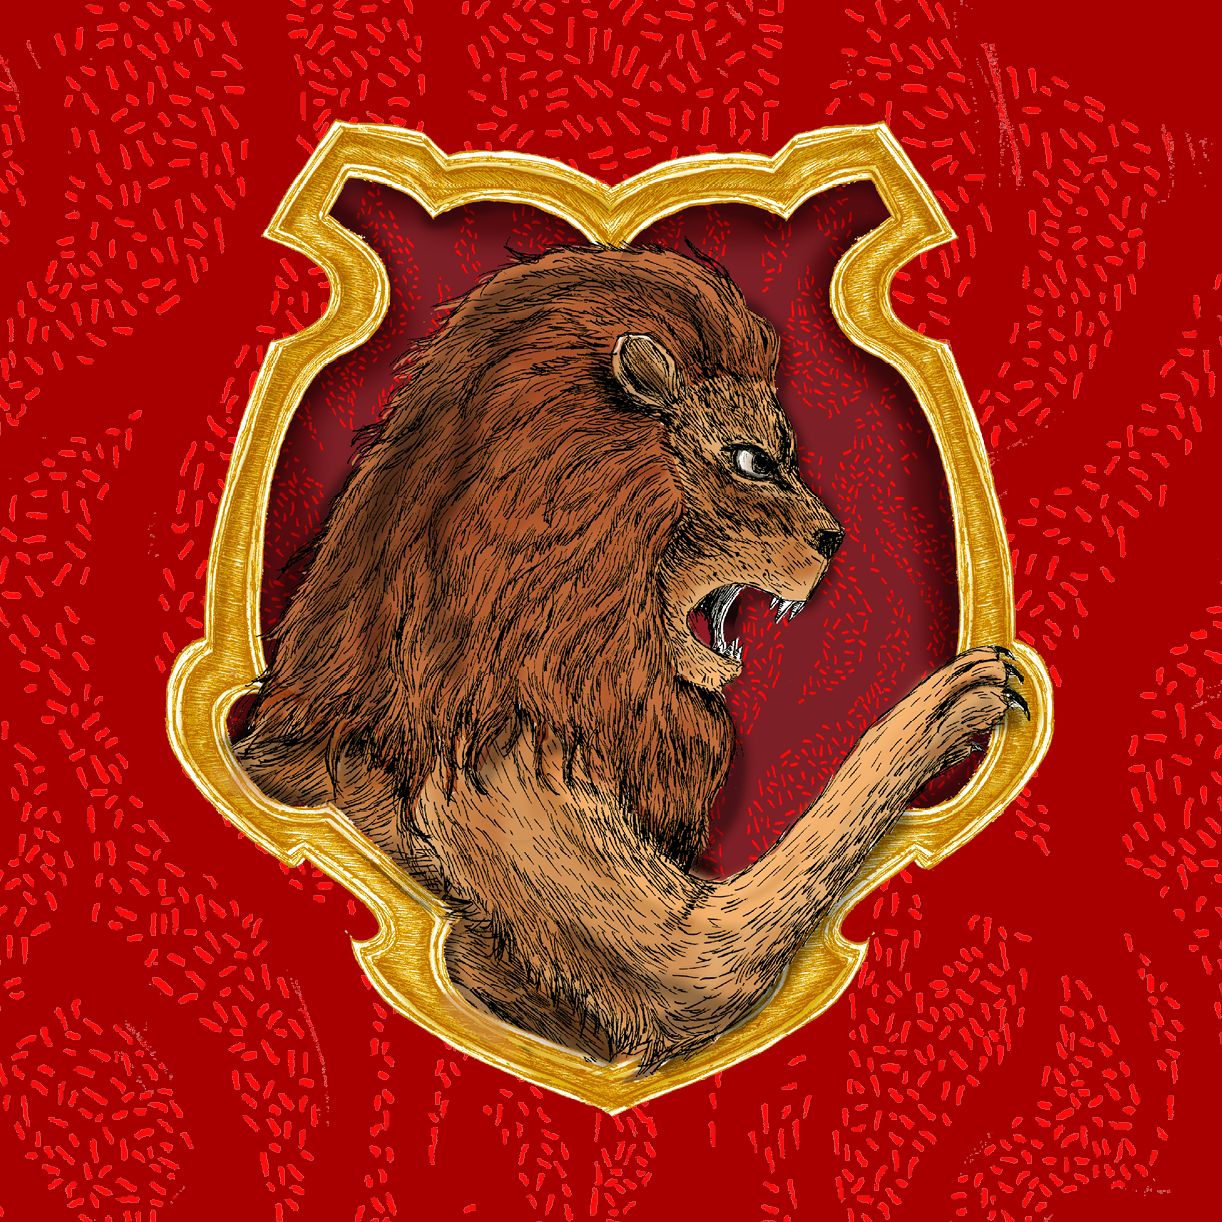 Pottermore Gryffindor House Crest Illustration